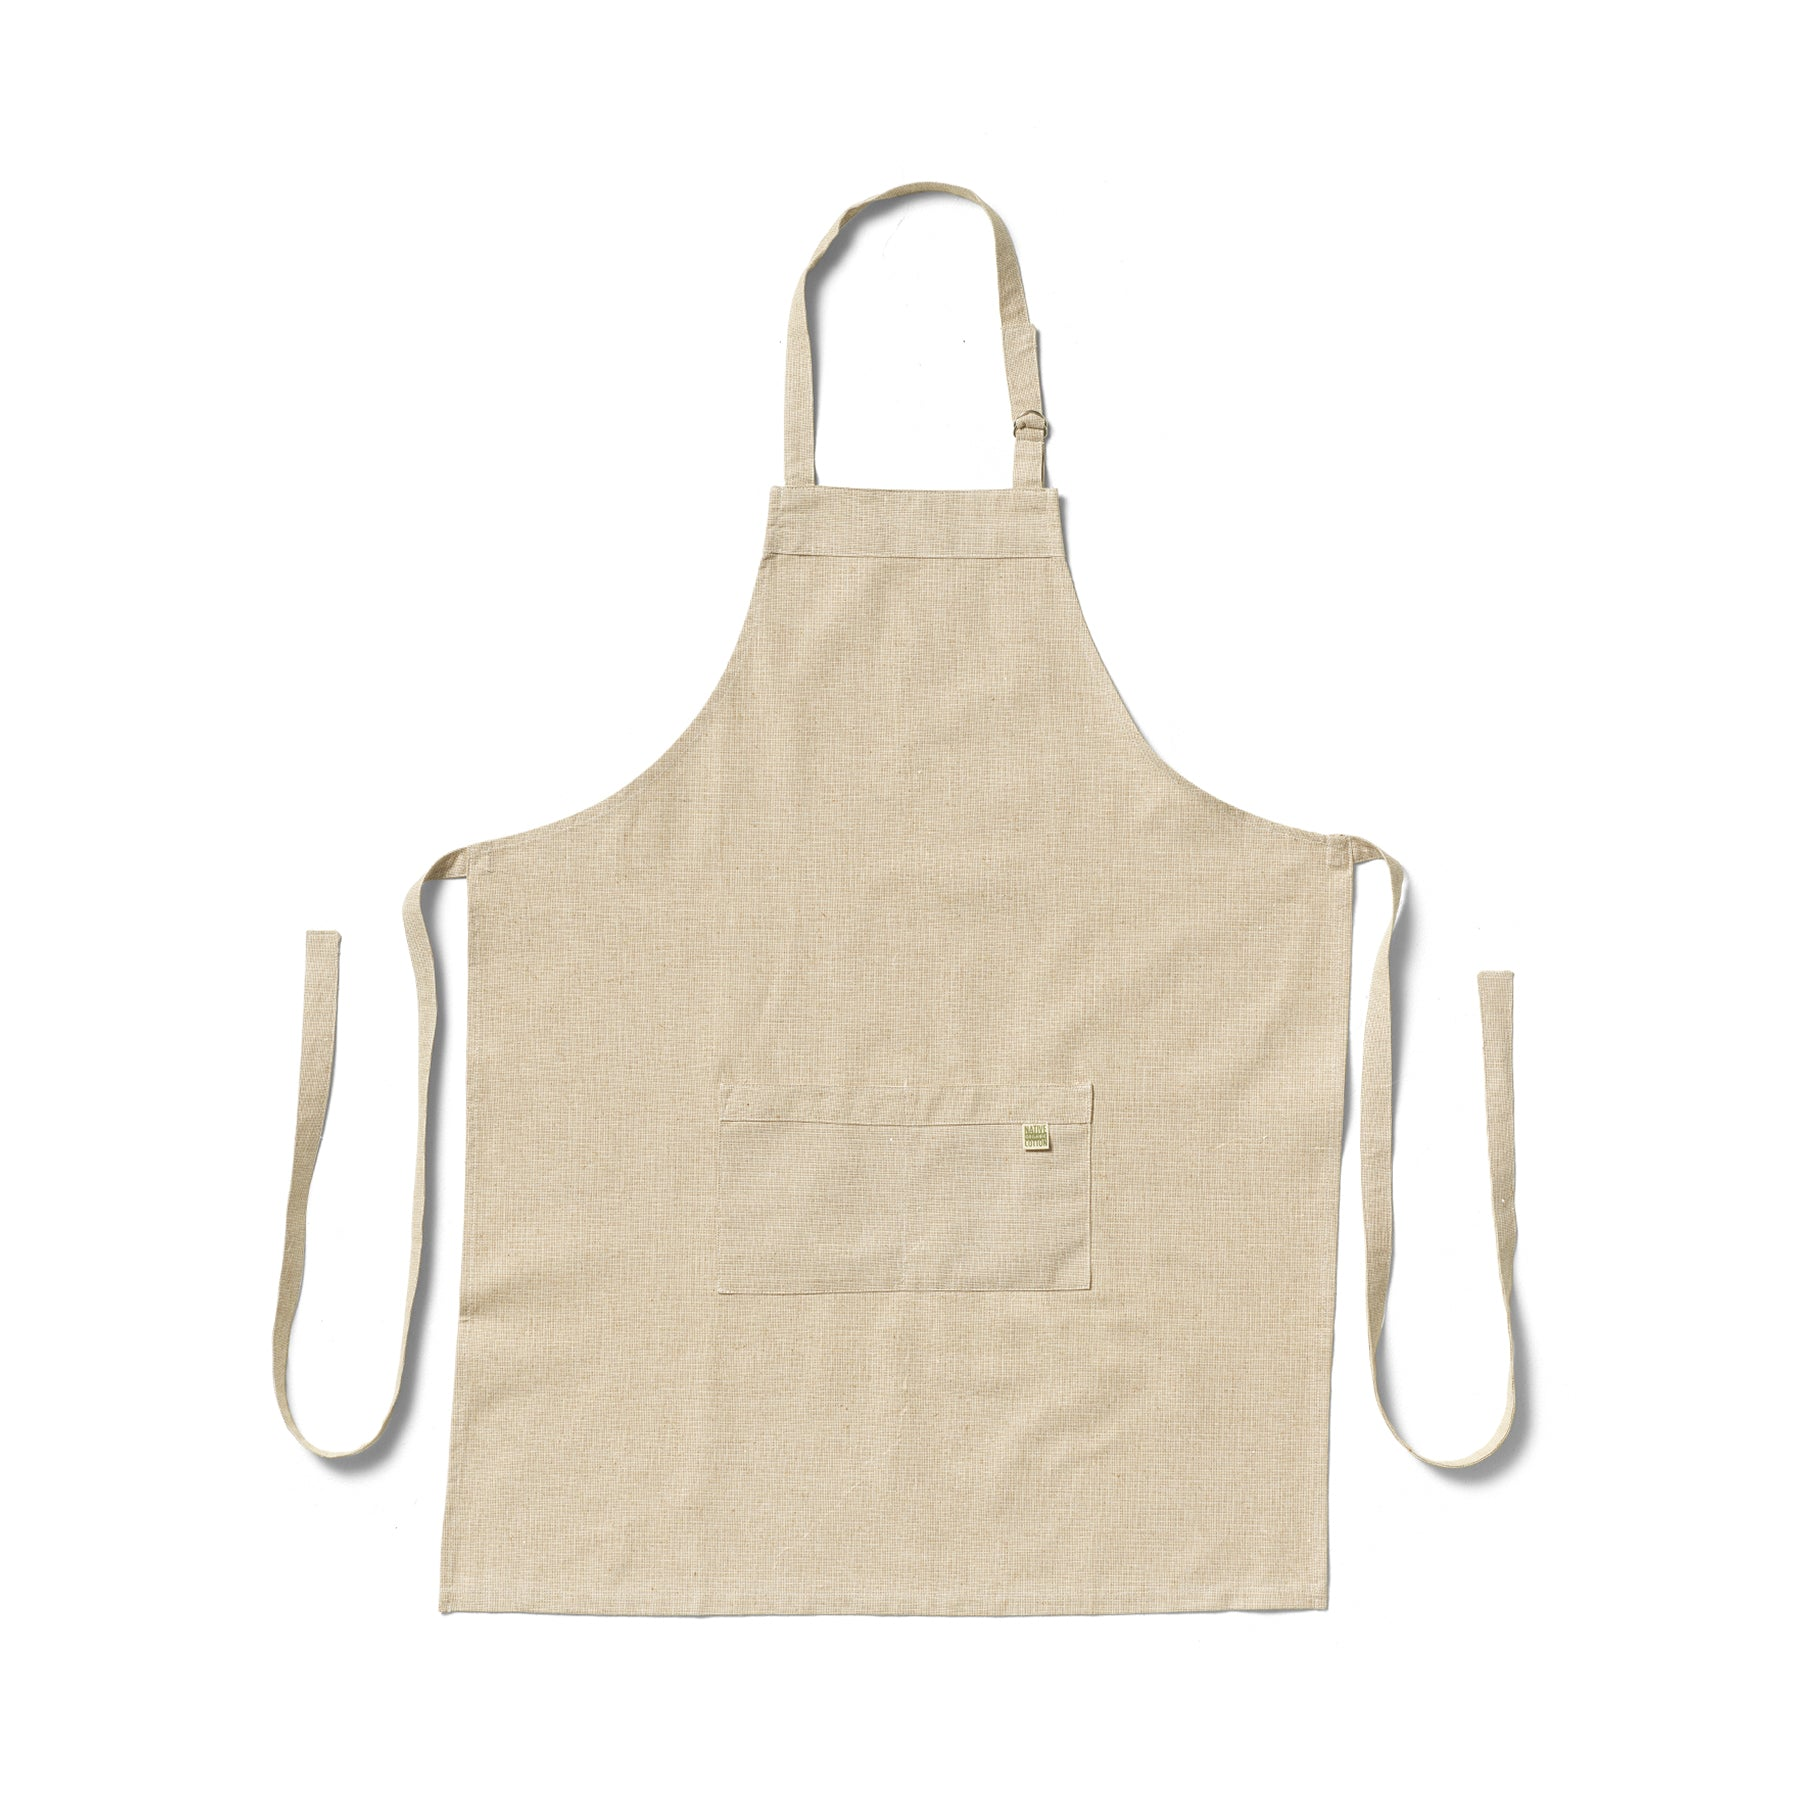 Organic Cotton Apron in Cafe Zoom Image 1